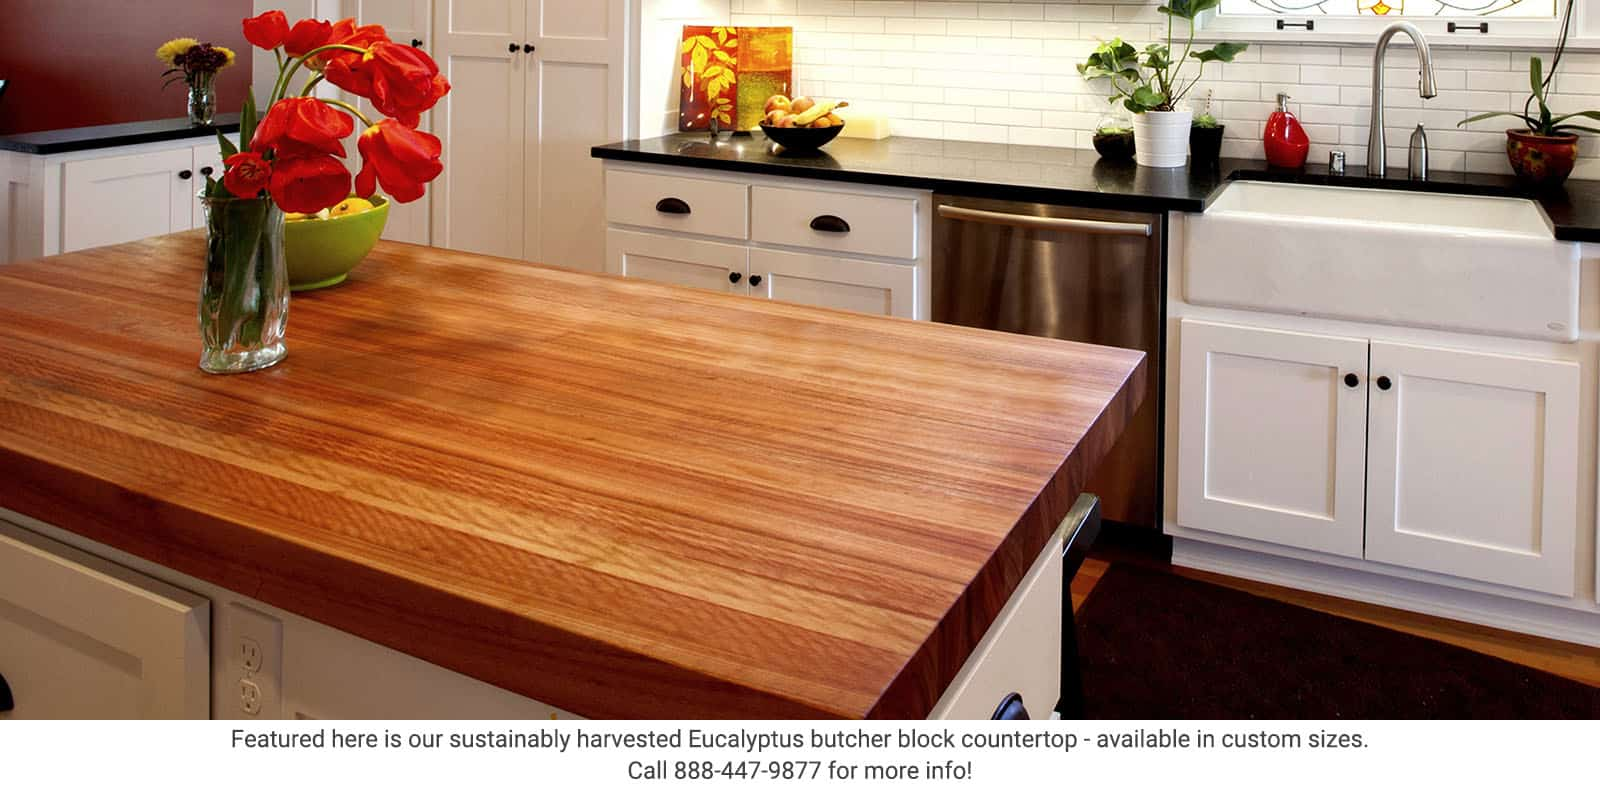 Featured here is our sustainably harvested Eucalyptus butcher block countertop - available in custom sizes at Greenhome Solutions.